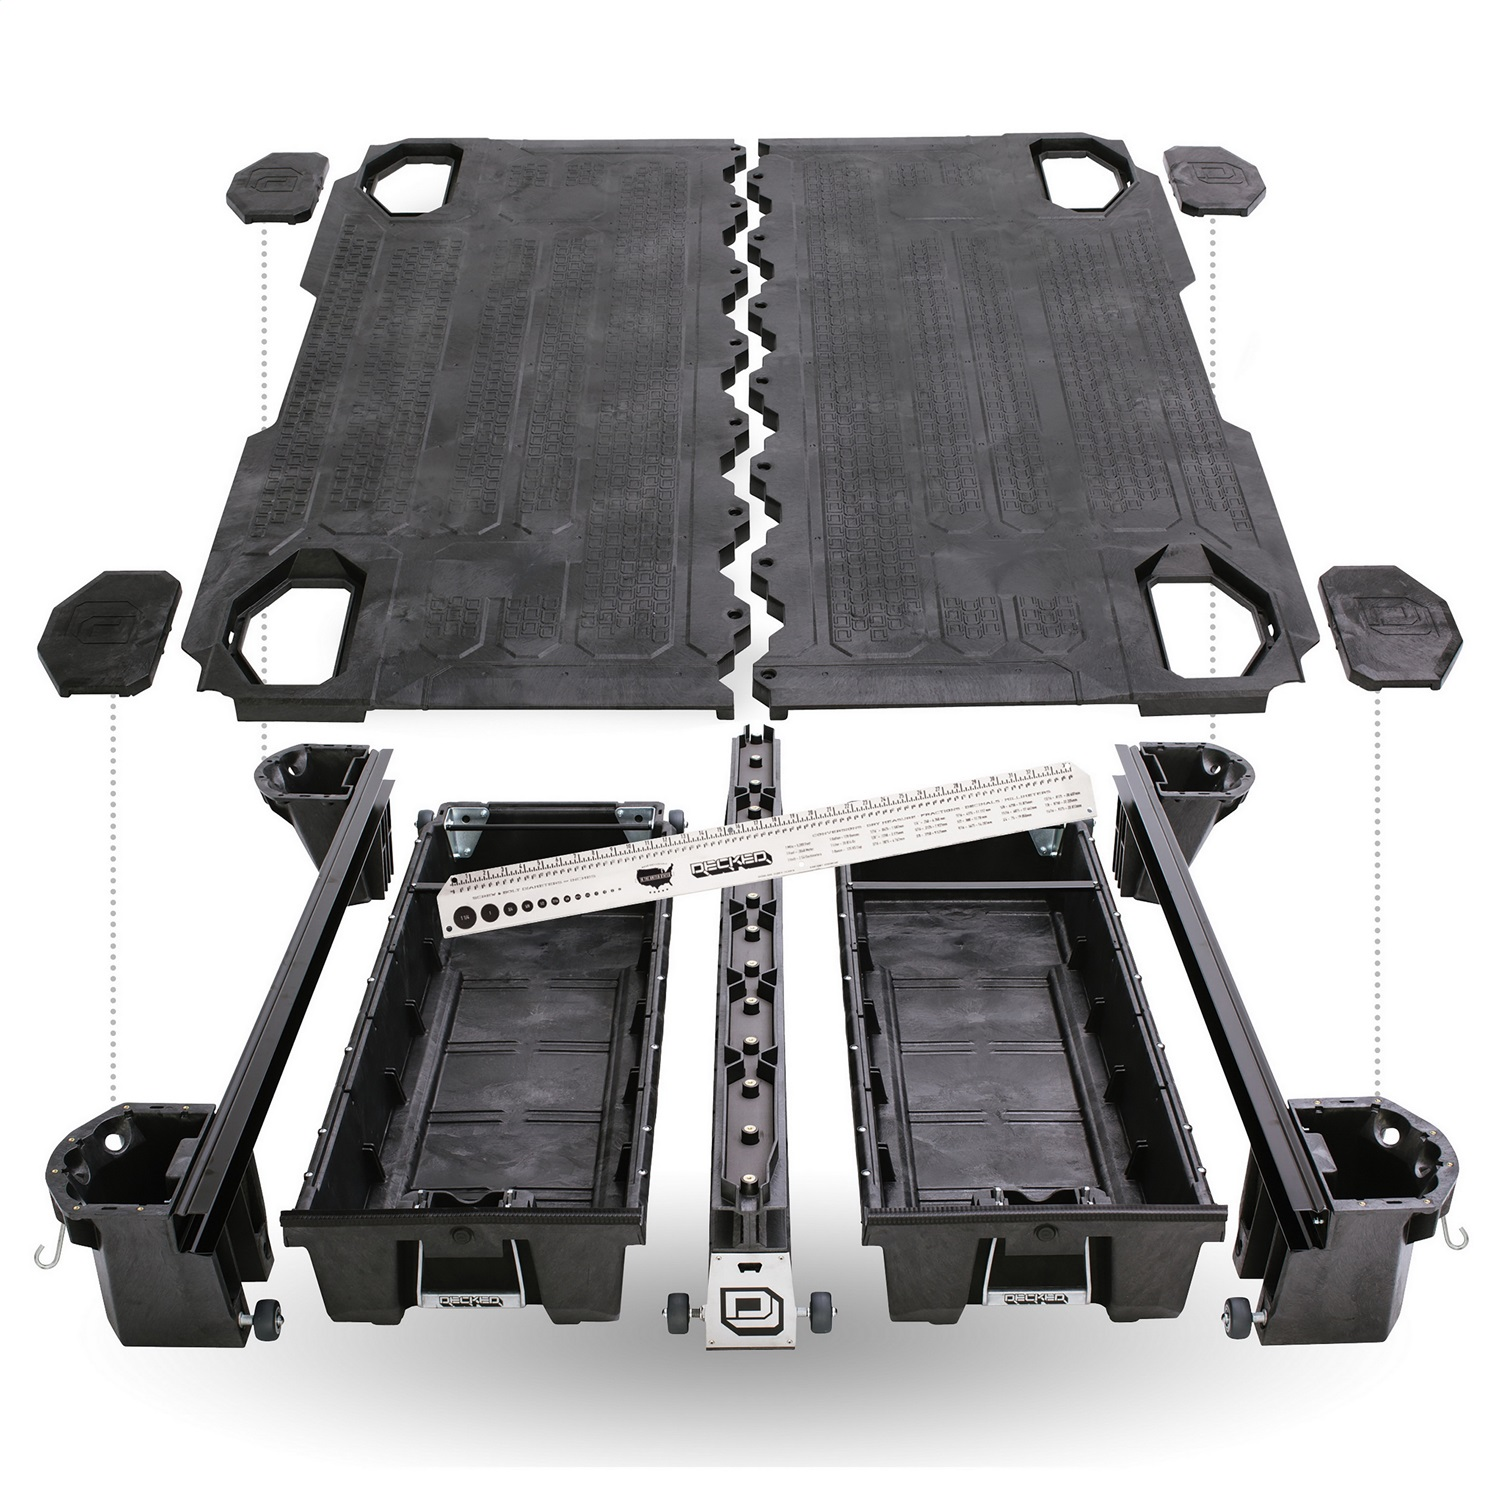 DECKED Truck Bed Storage System, 75.25 in., Made Of High Density Polyethylene, Stainless Steel Hardware, Features Cast Aluminum Handles / Galvanized Steel Subframe